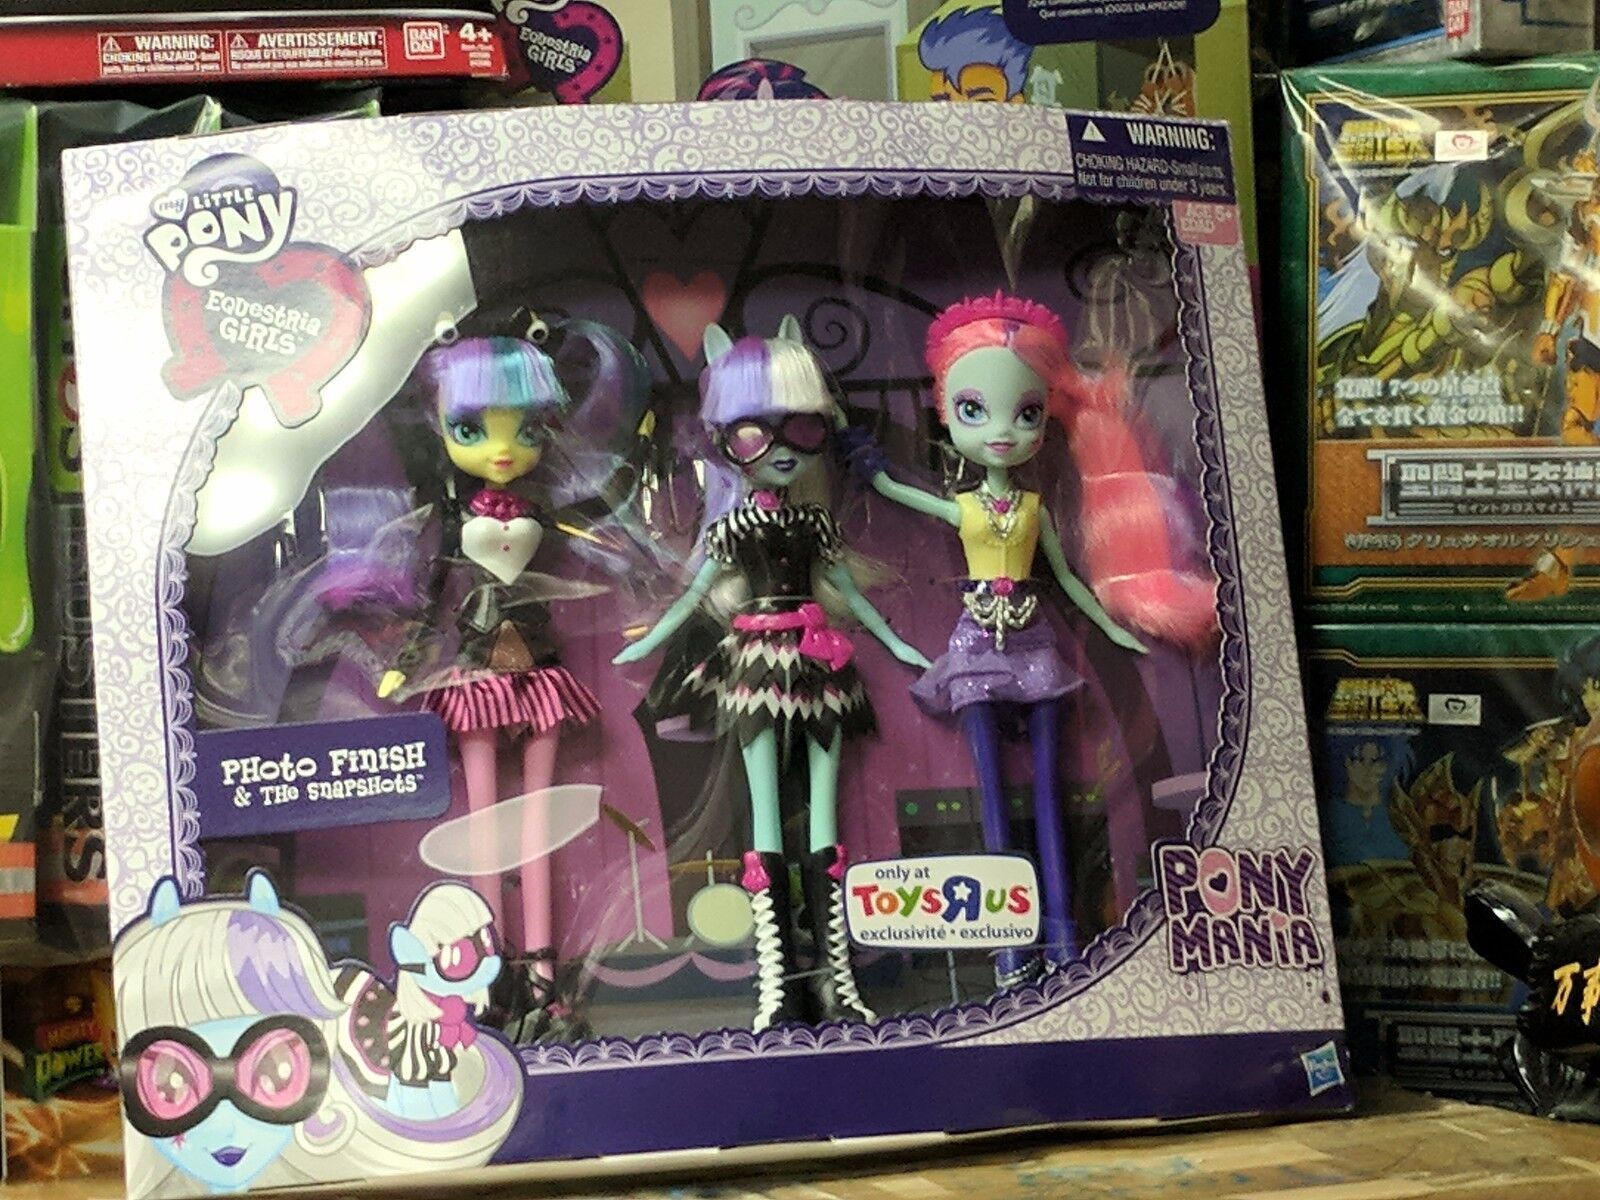 MY LITTLE PONY PHOTO FINISH & THE THE THE SNAPSHOTS EQUESTRIA GIRLS DOLLS Brand New 2b6a4b